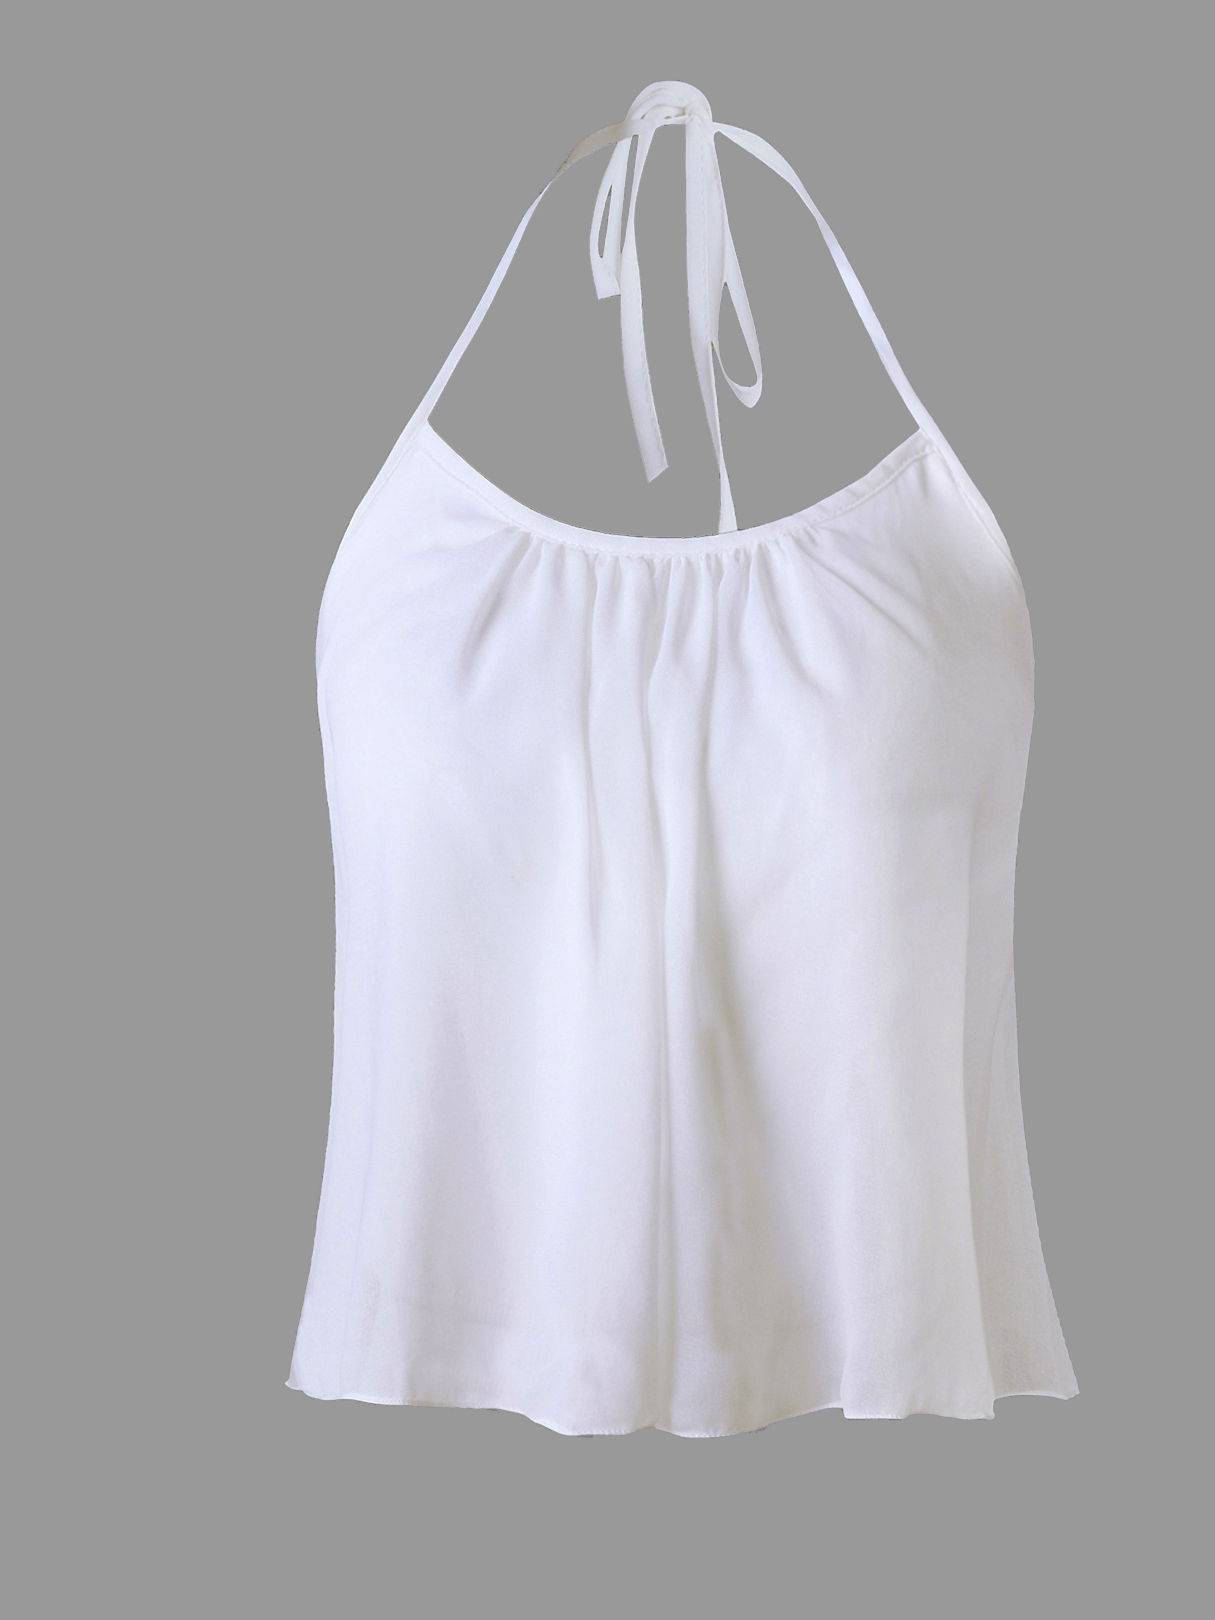 White Semi-sheer Halter Neck Chiffon Crop Top